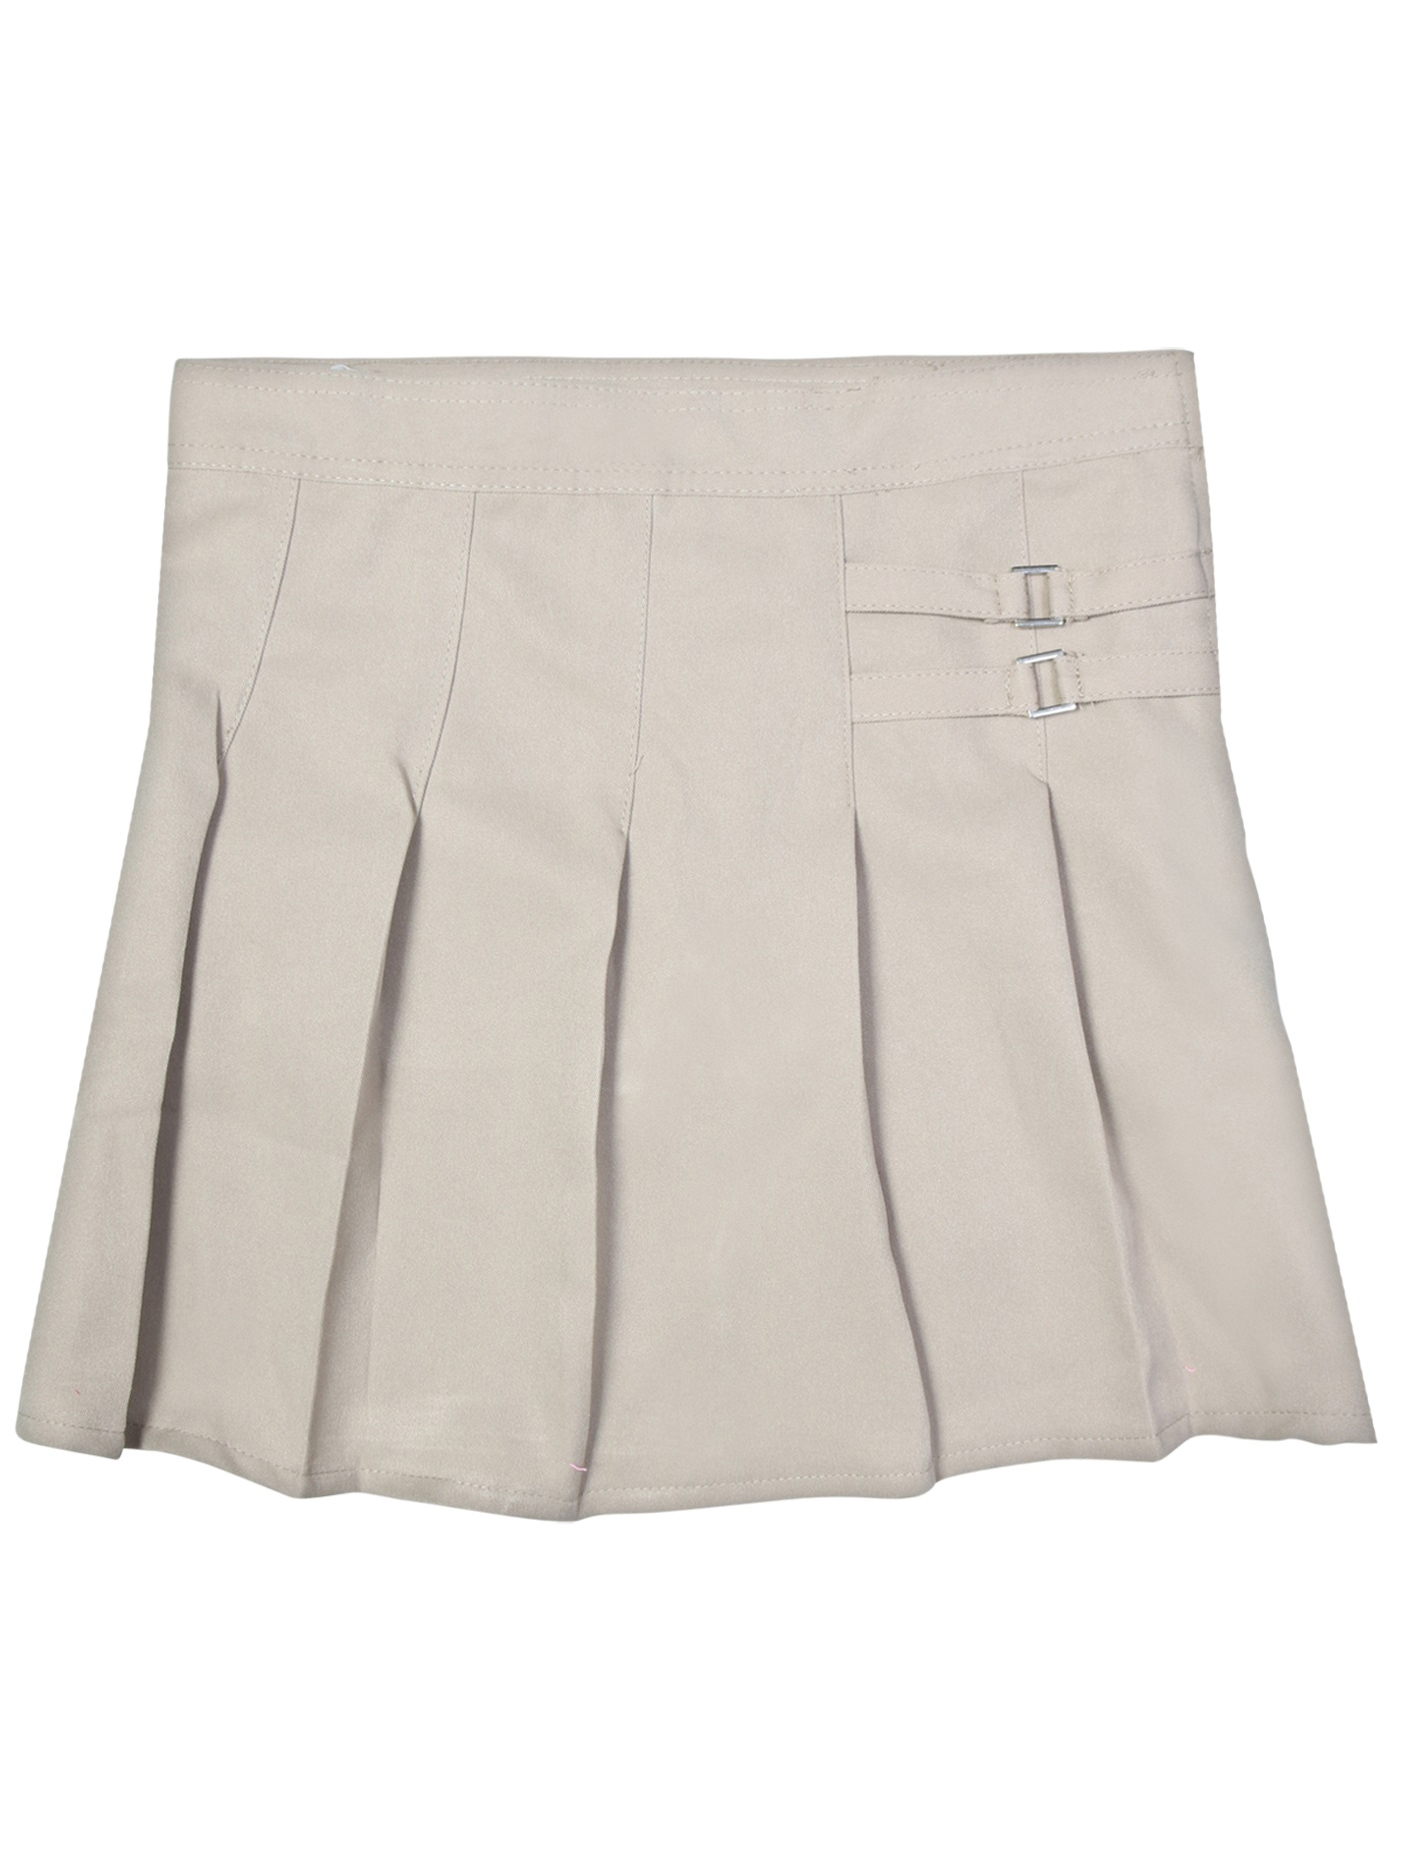 Girls' School Uniform Pleated Scooter With Side Buckle